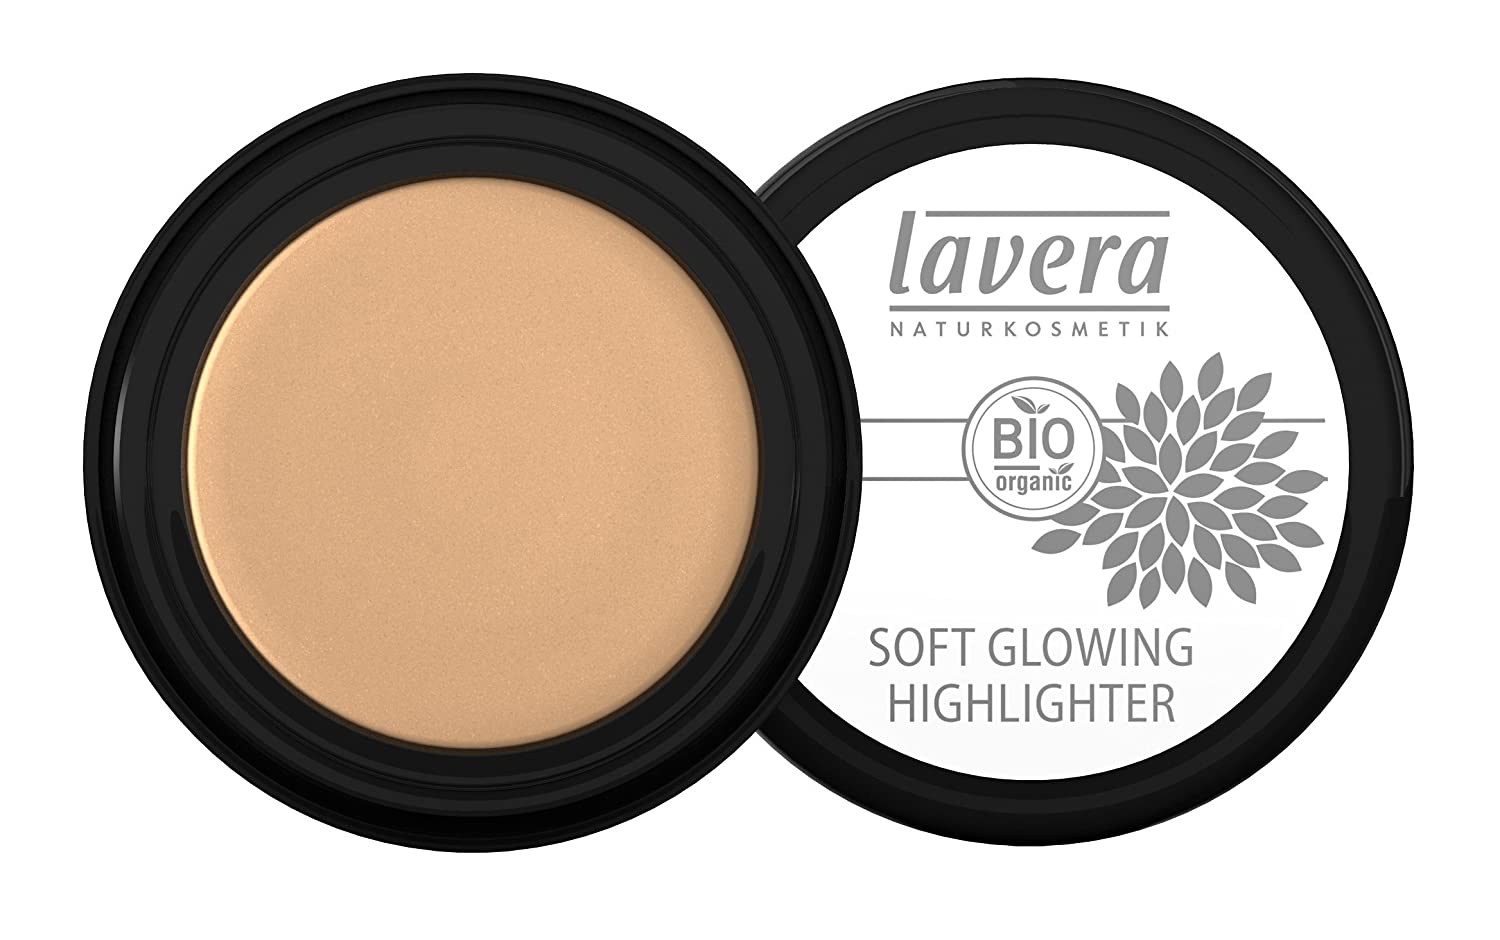 lavera Soft Glowing Highlighter -Golden Shine 03- vegano - cosméticos naturales 100% certificados - maquillaje - 4 gr Laverana 1043640